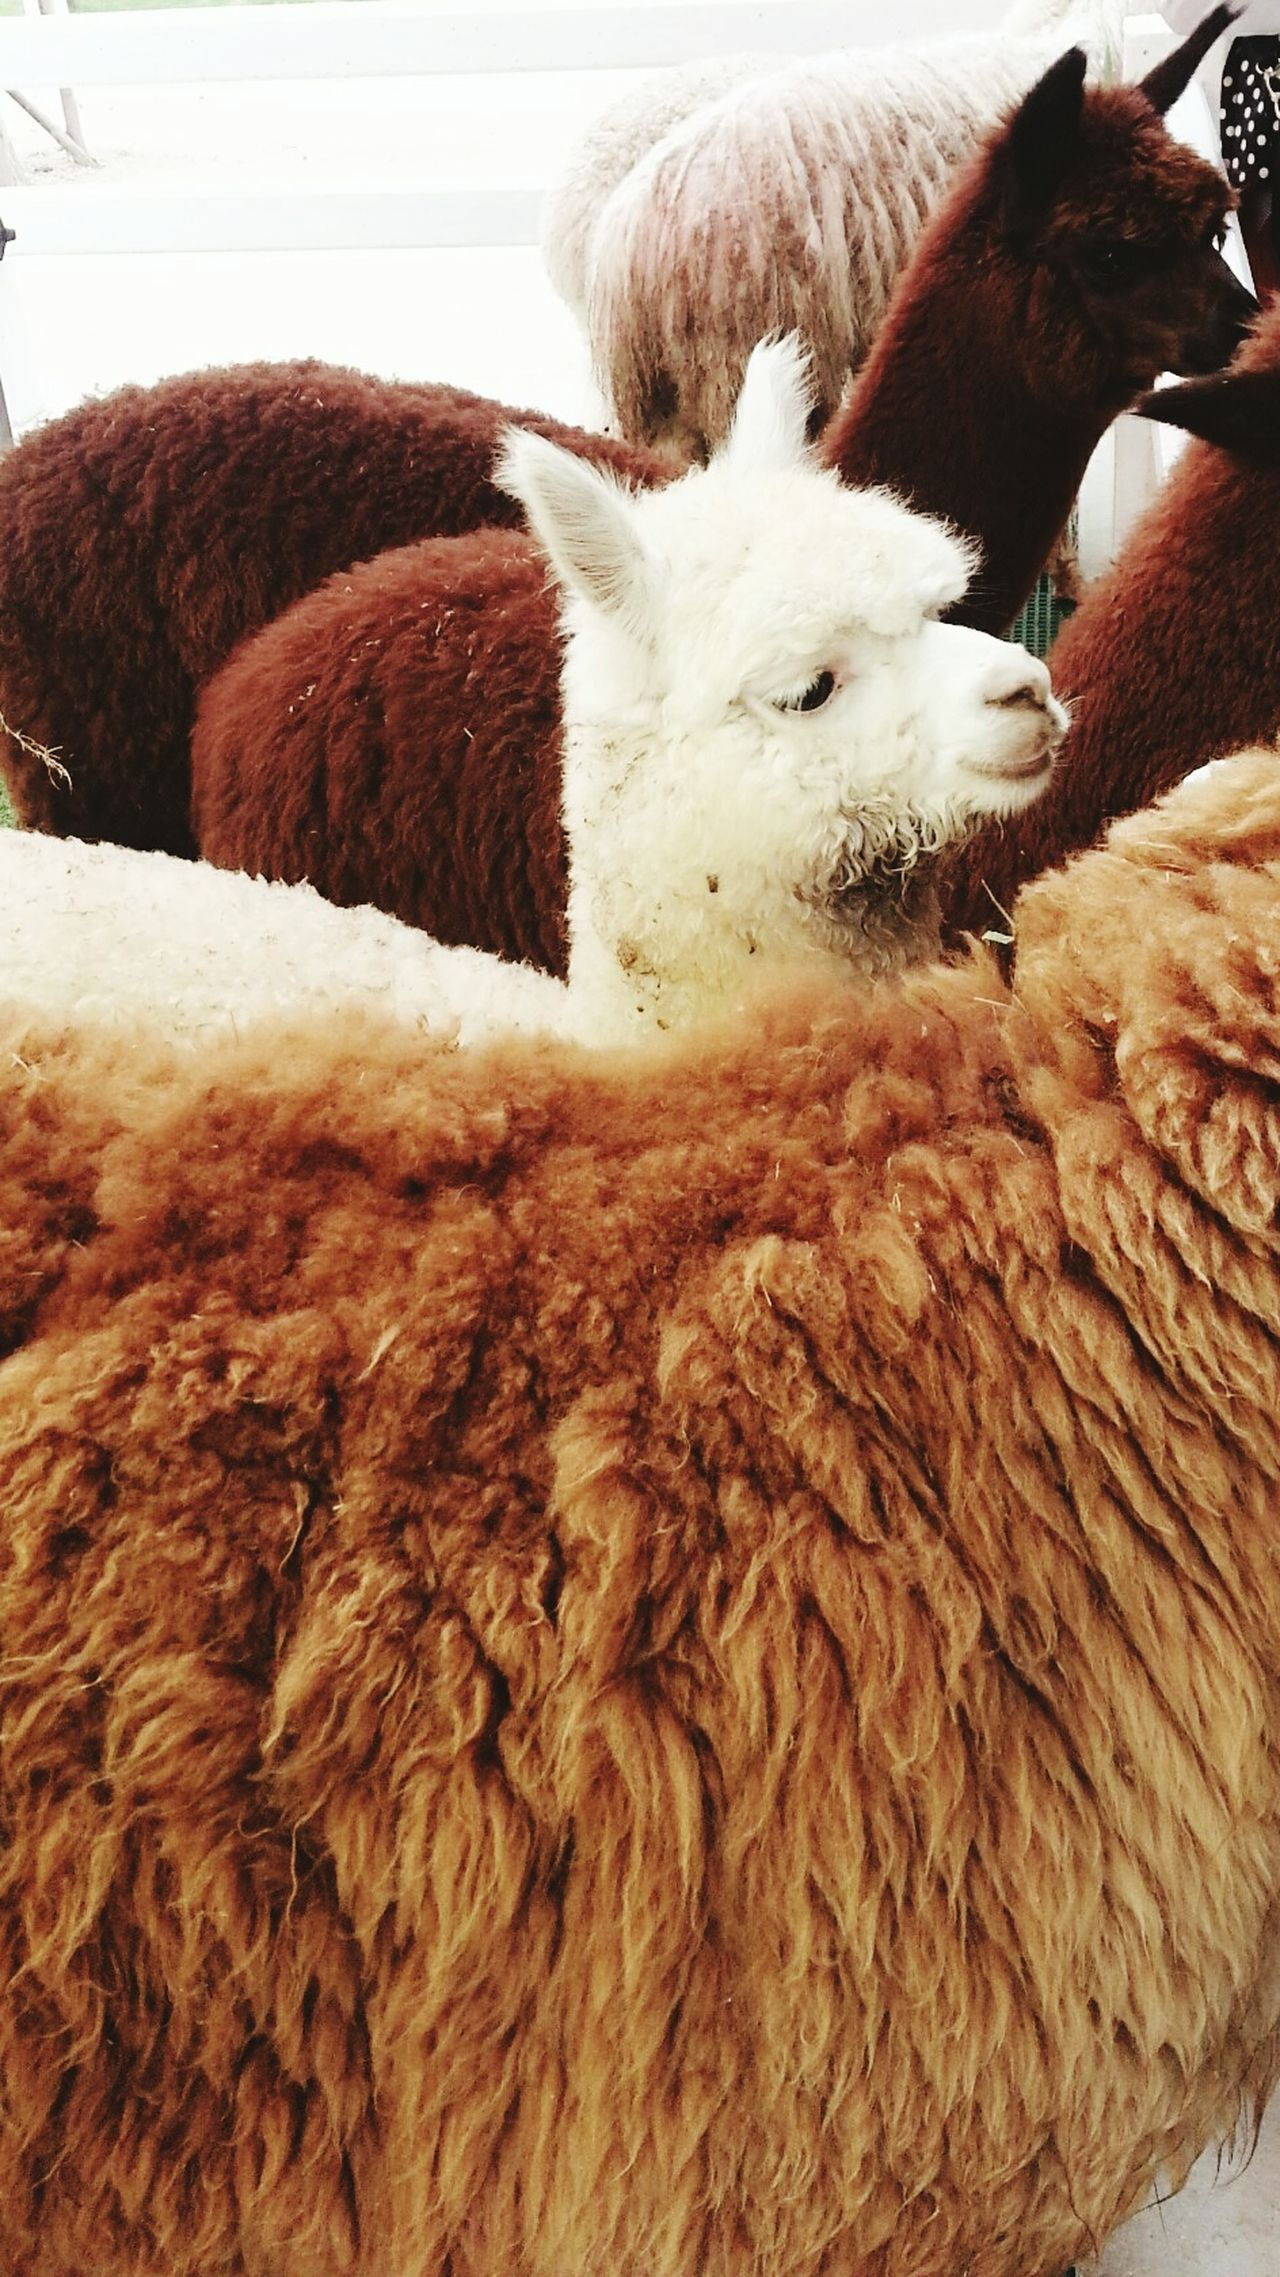 Sheep Farm Sheep🐑 Smiling Smile Love  Farm Animals Animals In The Wild Animal_collection